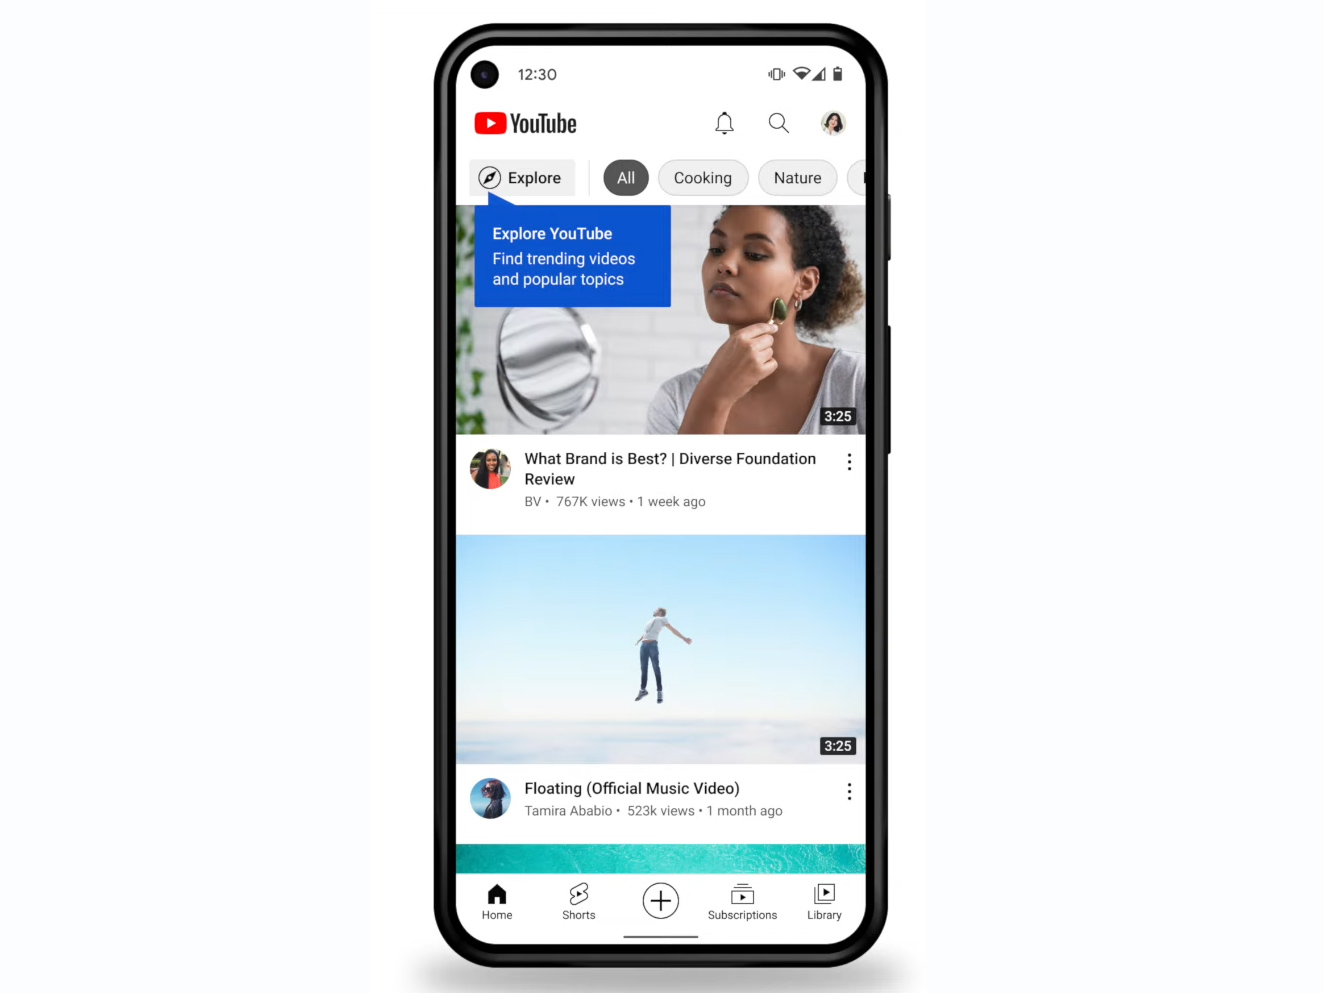 """The new YouTube app layout. """"Shorts"""" gets a tab at the bottom, while """"Explore"""" is demoted to the top of the home page."""